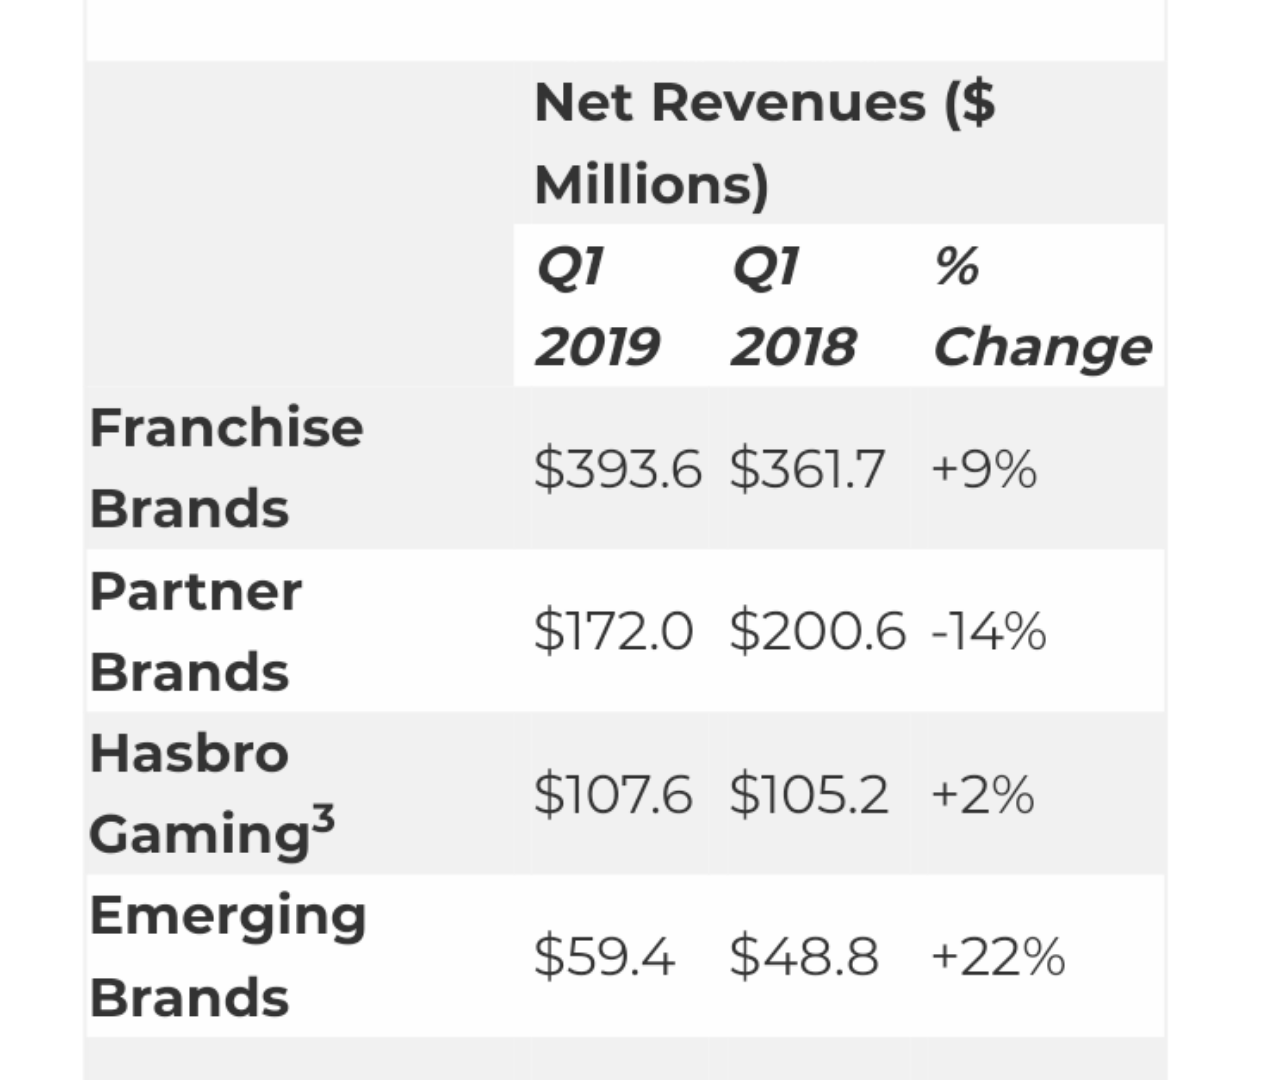 Transformers News: Transformers is one of the main Hasbro Brands with Revenue Gains in First Quarter 2019